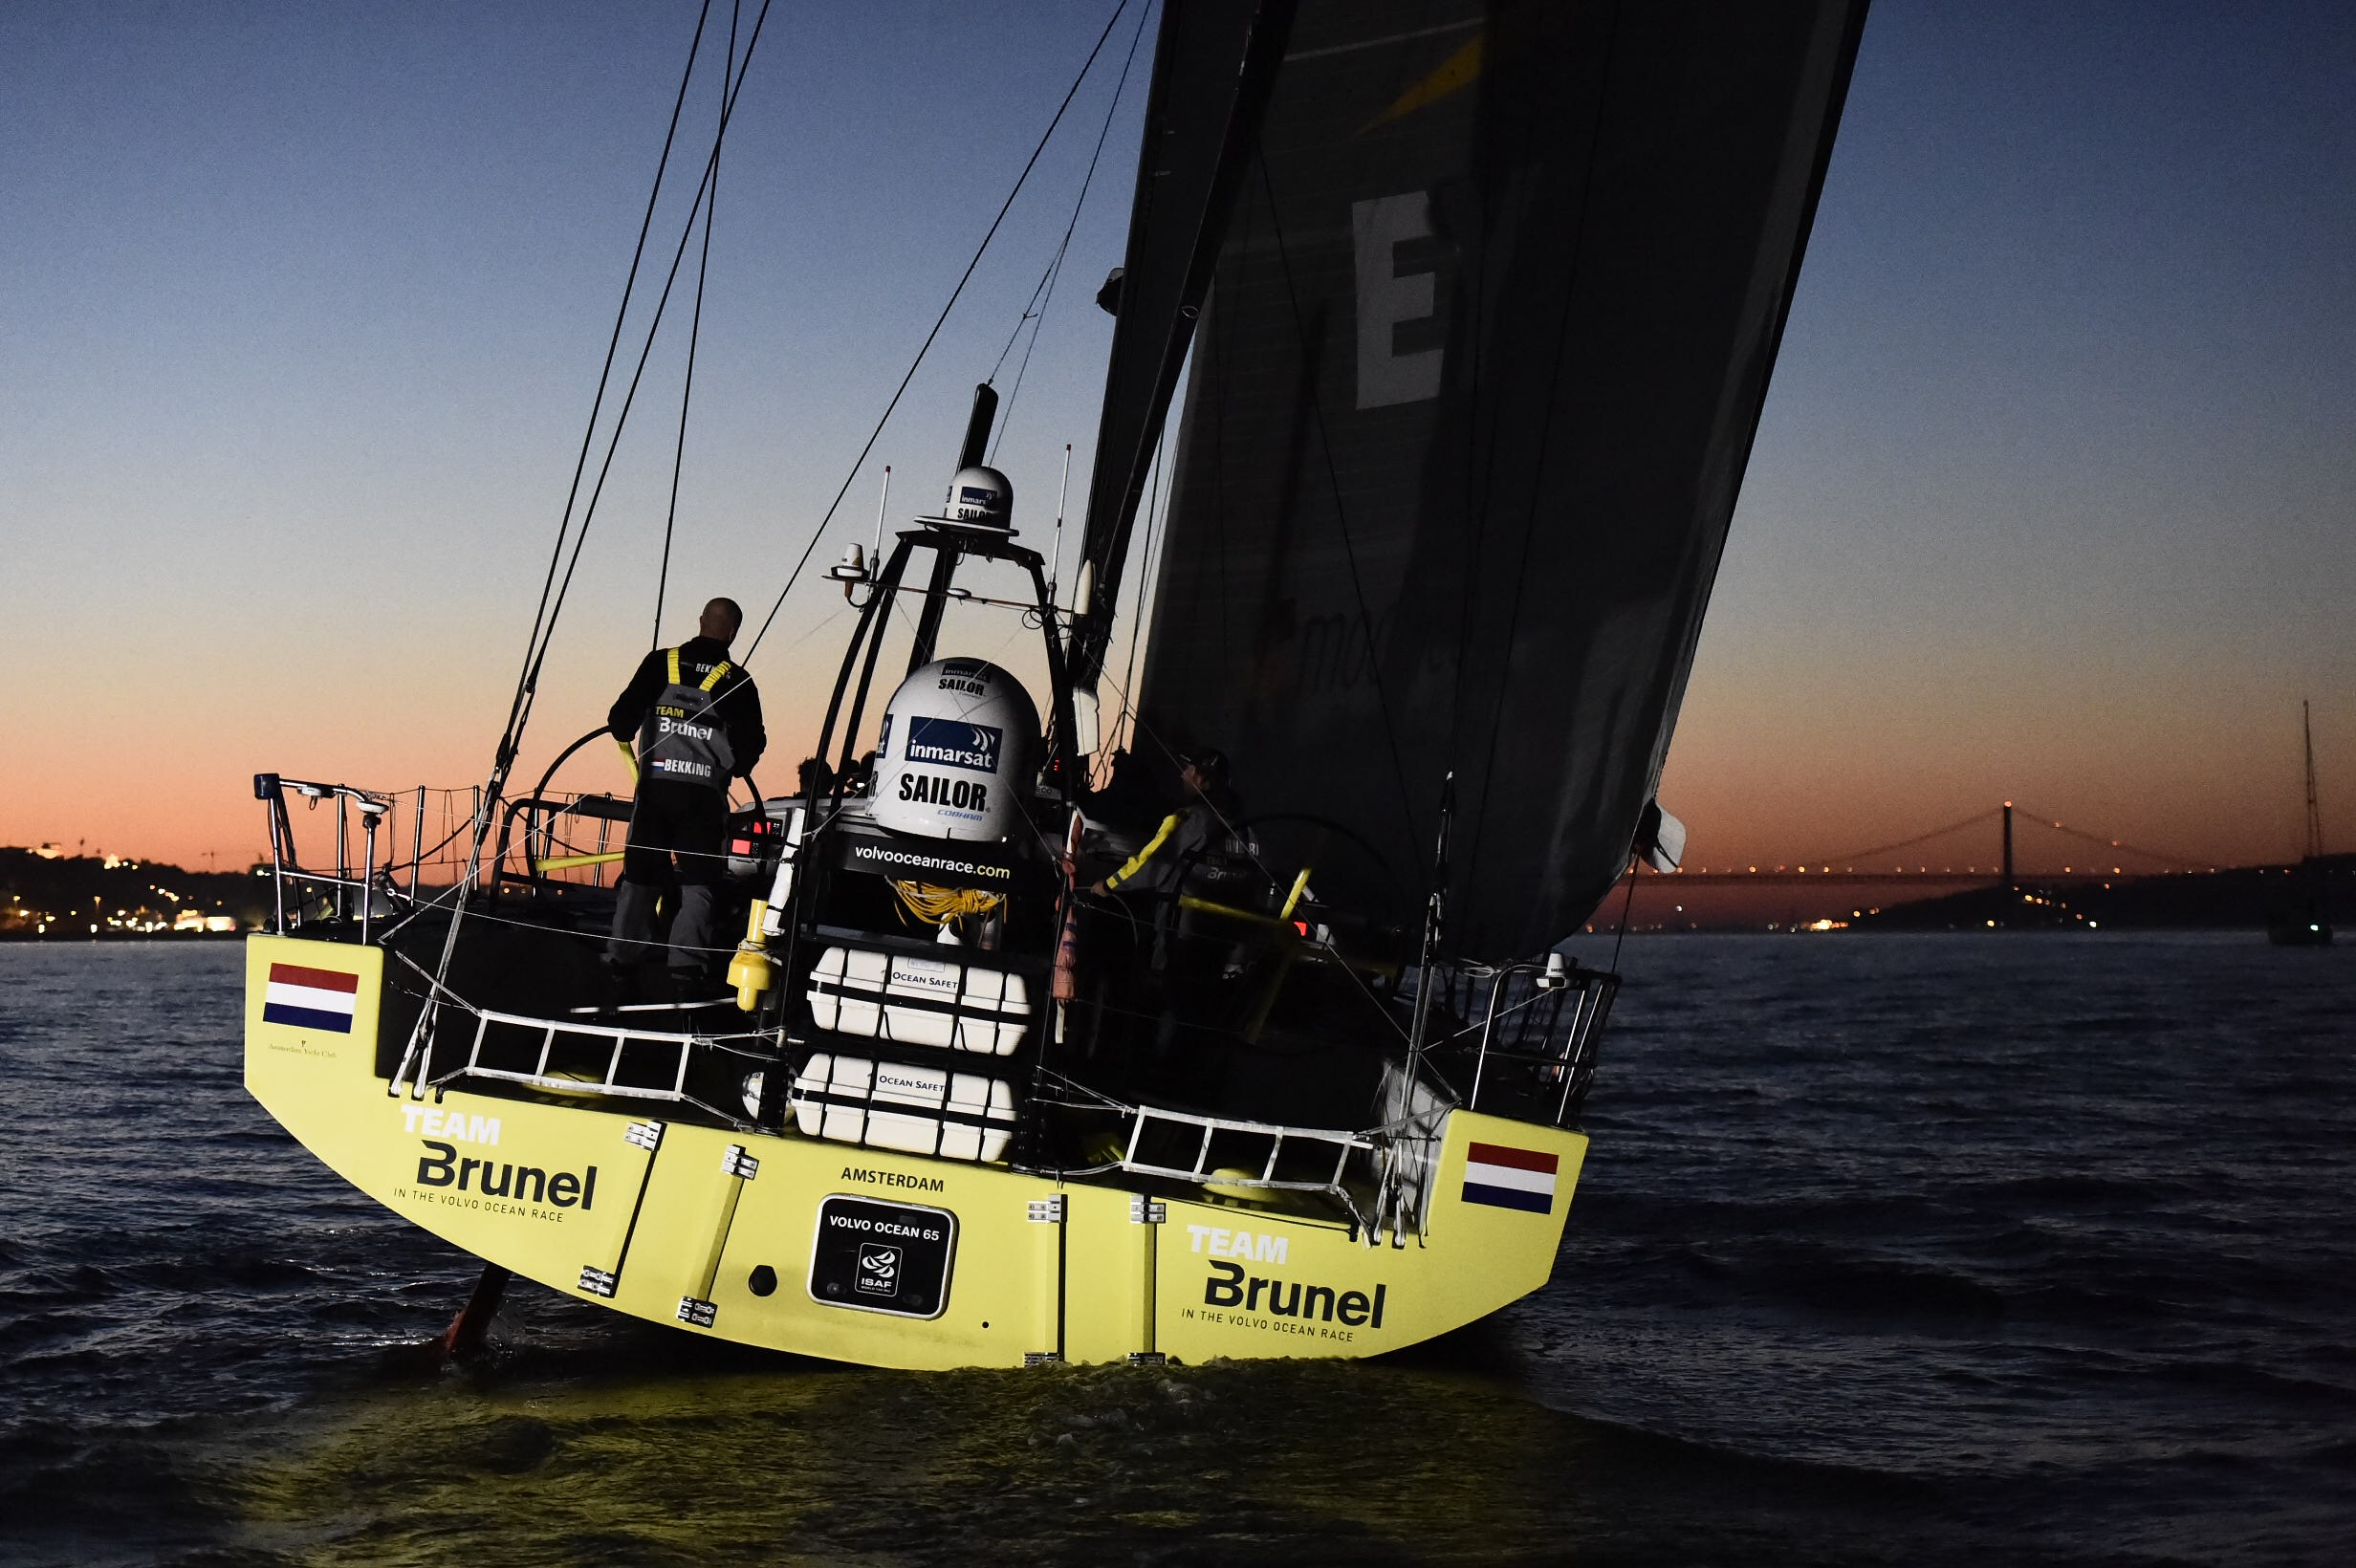 Team Brunel arrives to Lisbon in first position after Leg 7 from Newport. (Photo by Ricardo Pinto / Volvo Ocean Race)